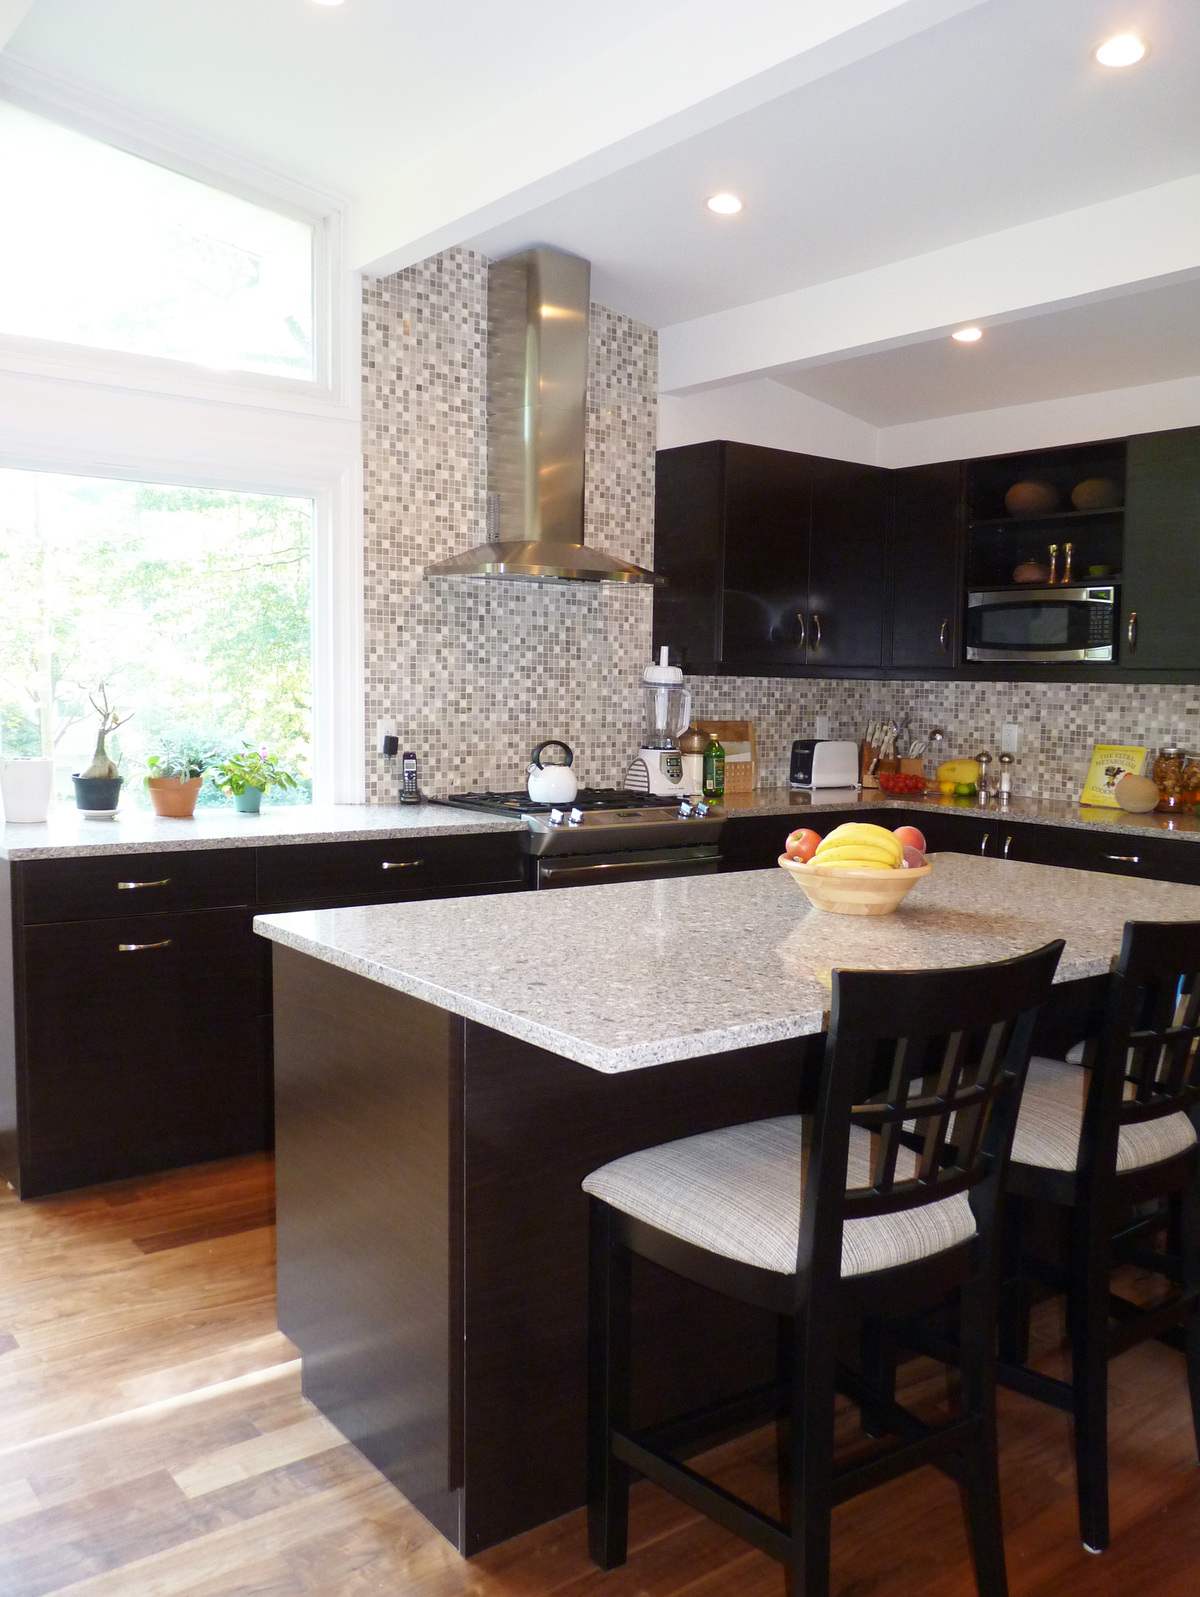 a mid century modern in nj kitchen cabinets color combination The clients wanted to keep the entire color scheme neutral yet contrasting so we chose